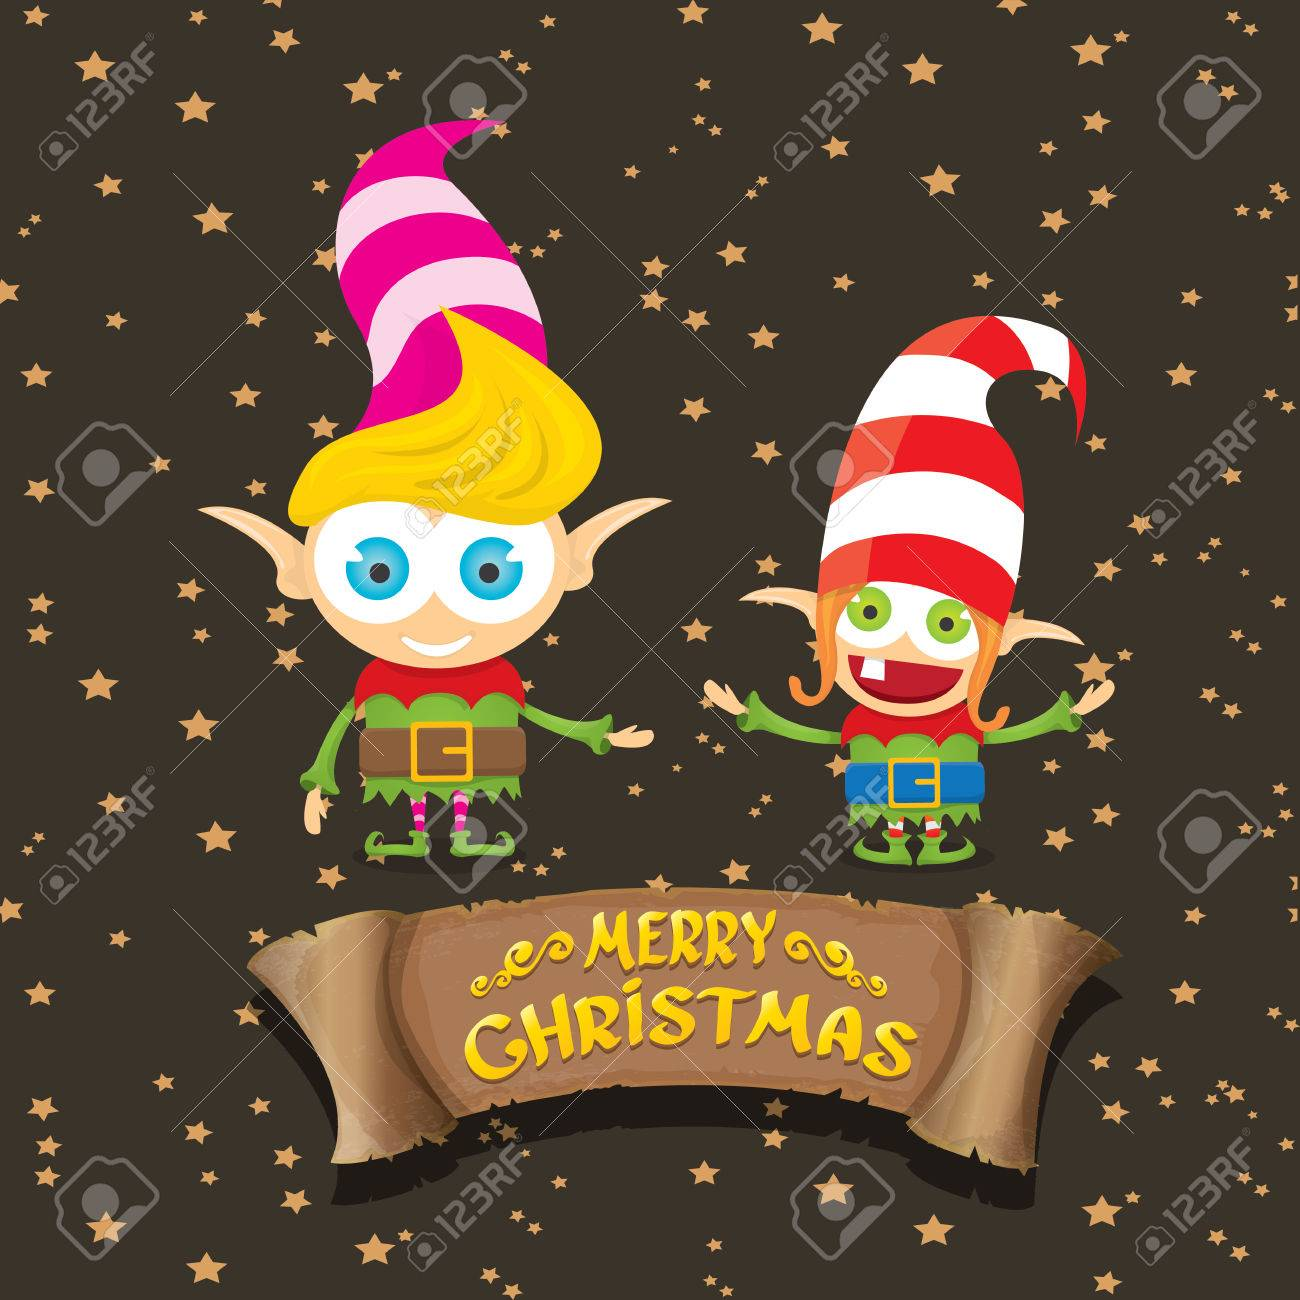 Vector Cartoon Cute Merry Christmas Elf On Brown Background With